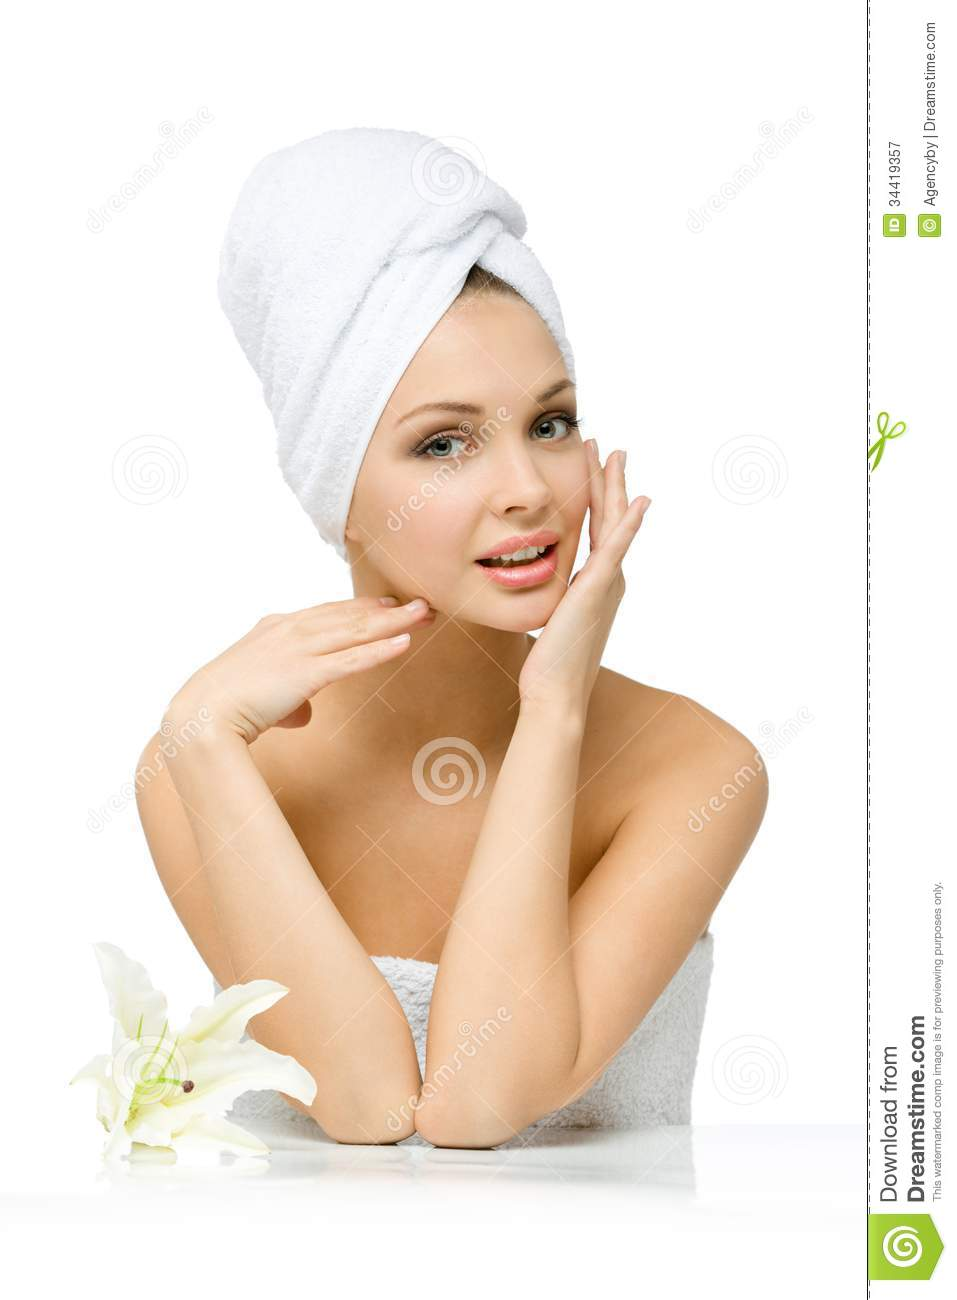 Nude Woman With Towel On Head Touches Face Royalty Free Stock -4498